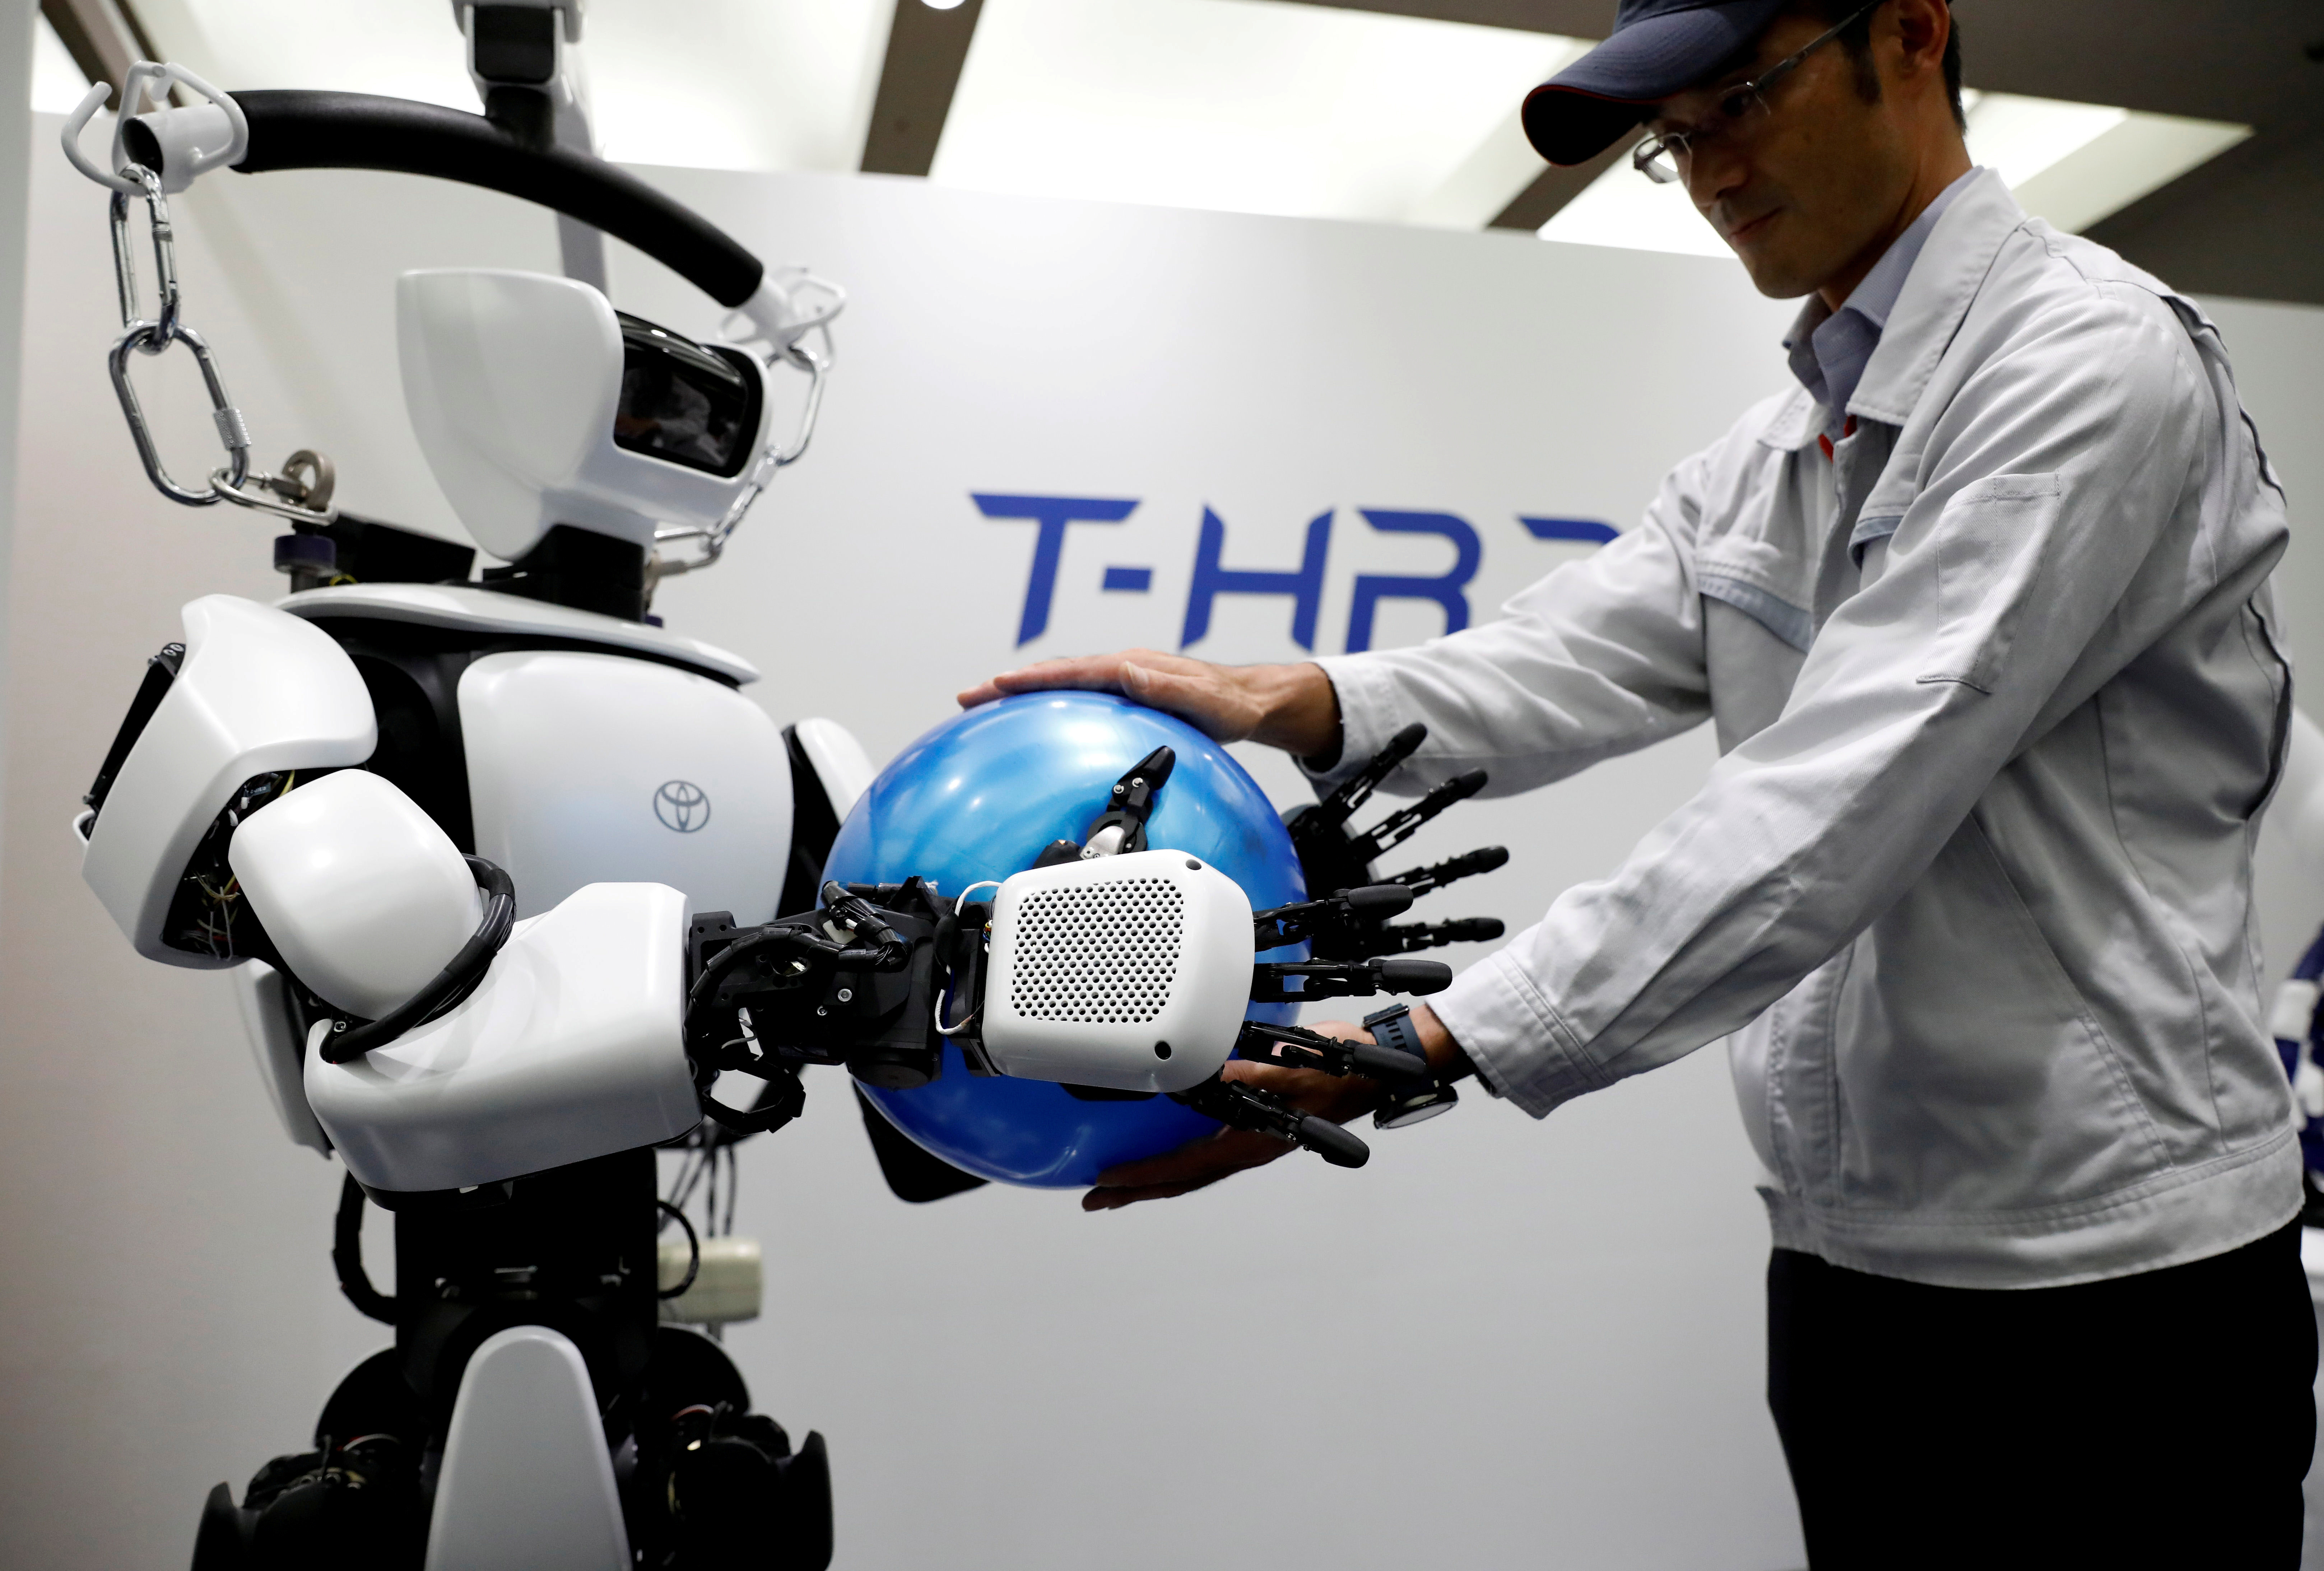 An employee of Toyota Motor Corp. demonstrates T-HR3 humanoid robot which will be used to support the Tokyo 2020 Olympic and Paralympic Games, during a press preview in Tokyo, Japan July 18, 2019. Picture taken July 18, 2019.  REUTERS/Issei Kato - RC1546F907F0